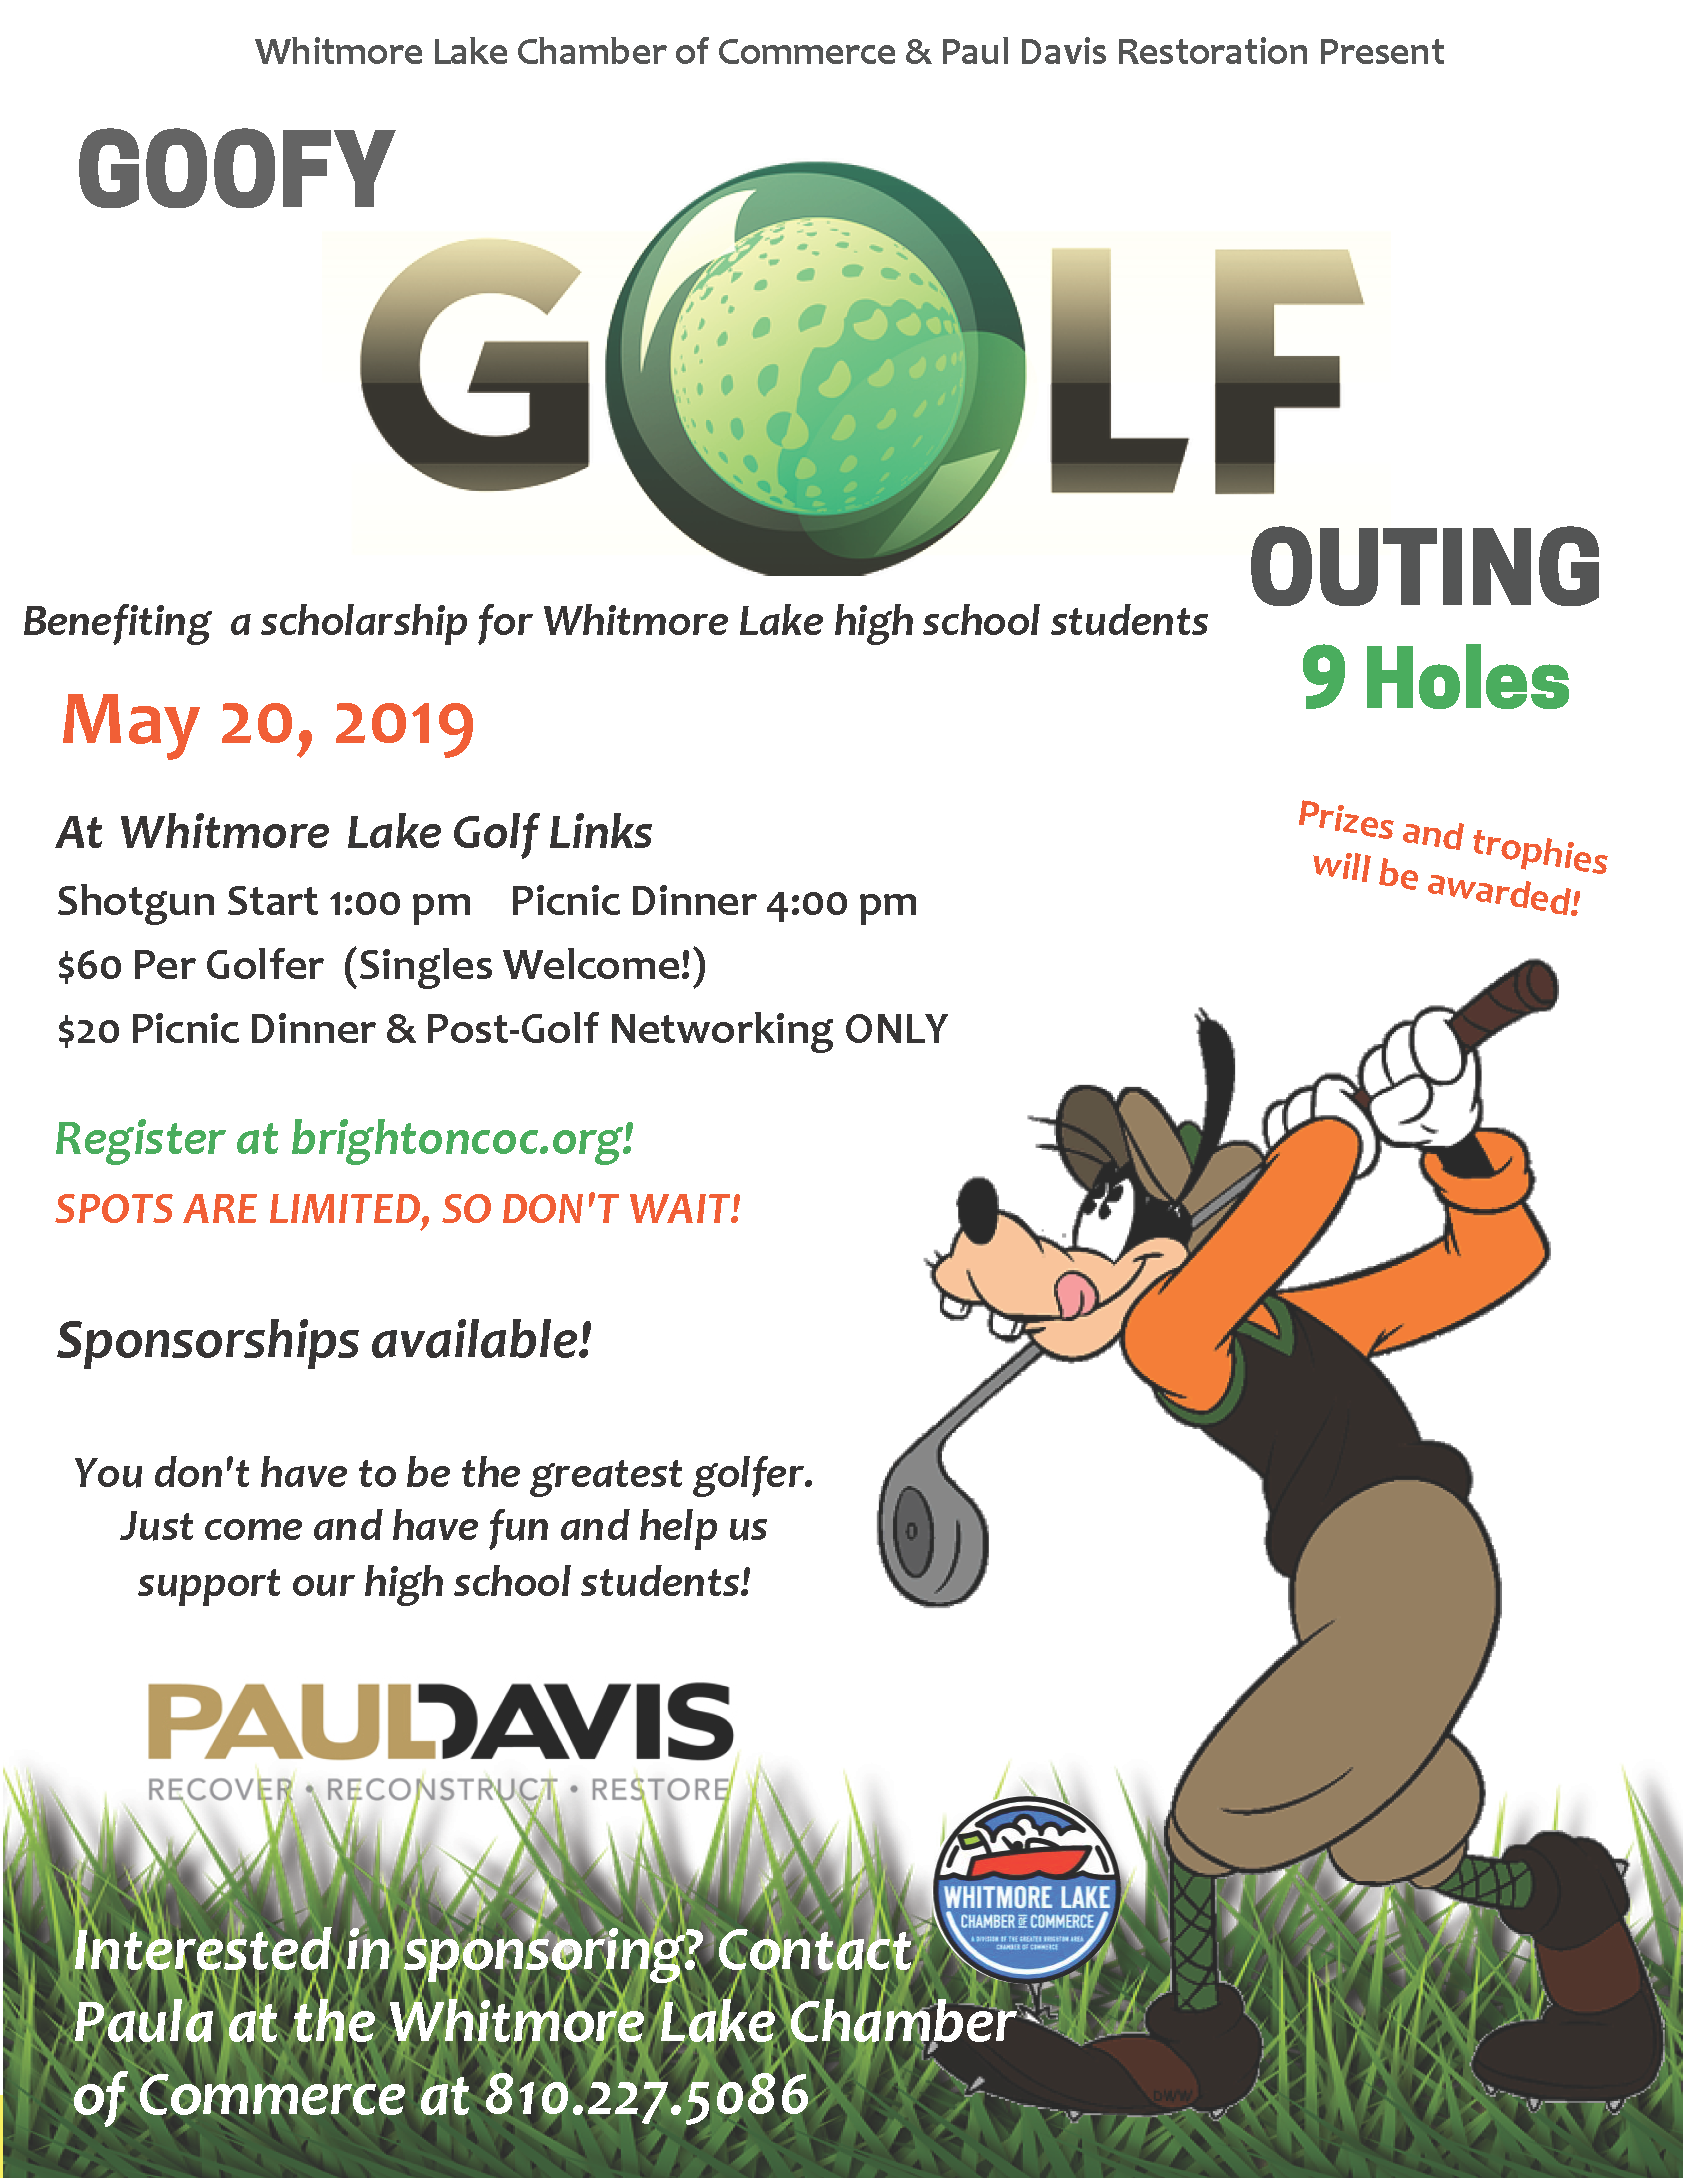 Whitmore Lake Goofy Golf Outing